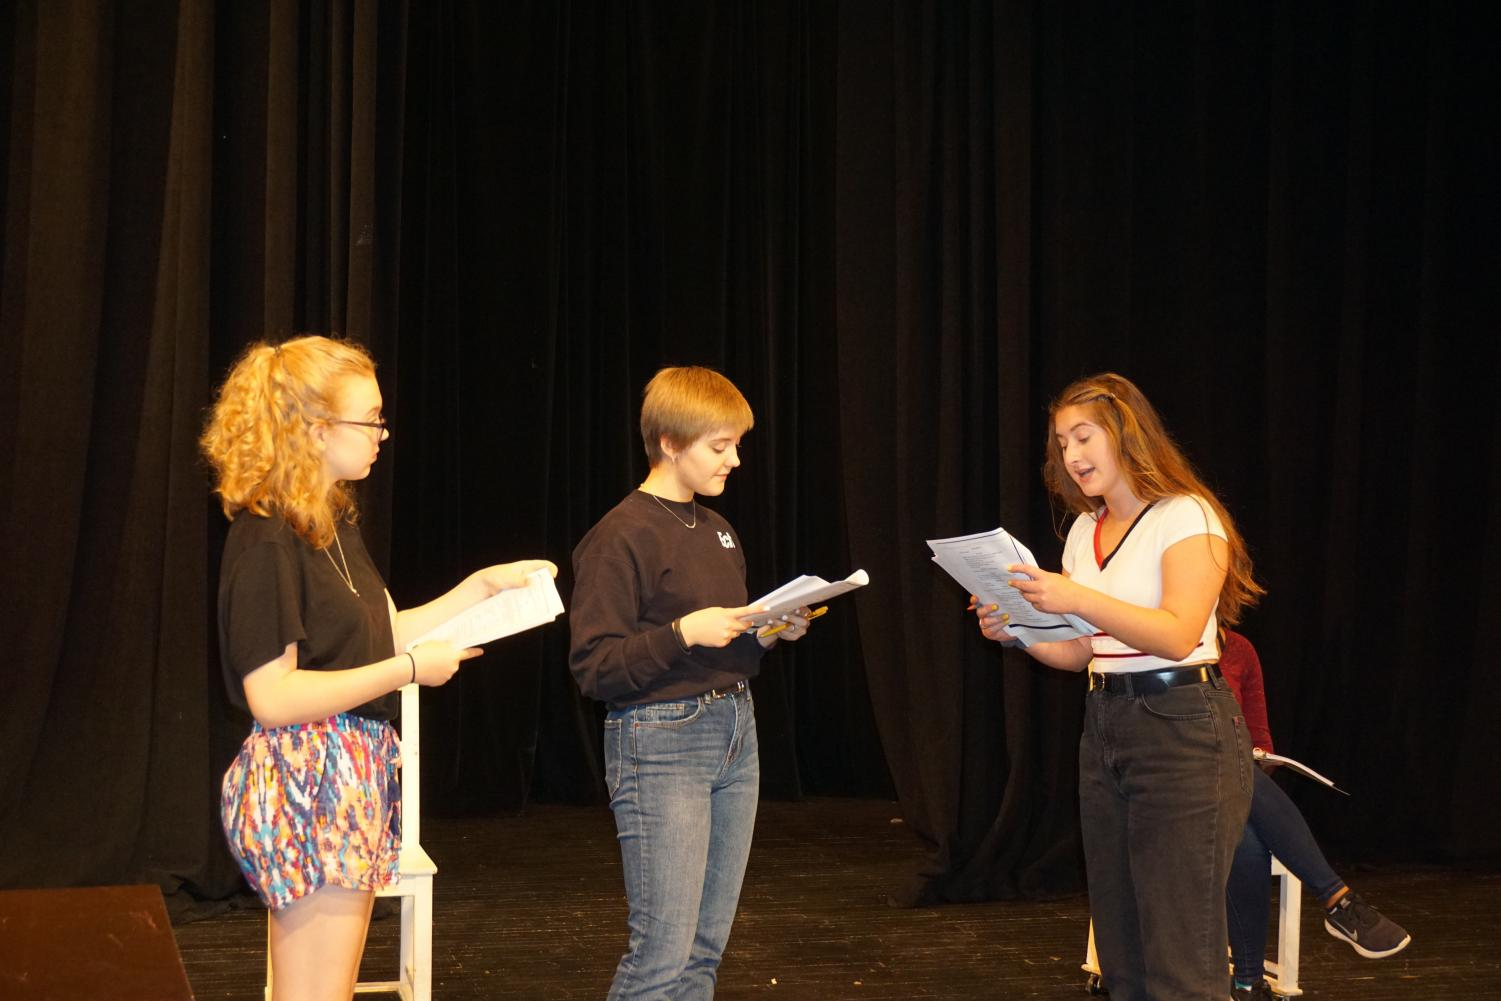 Senior Emma Yarger, Junior Ruby Stillman and Sophomore Phoebe MicKinney rehearse their lines in preparation for their upcoming musical '9 to 5'.